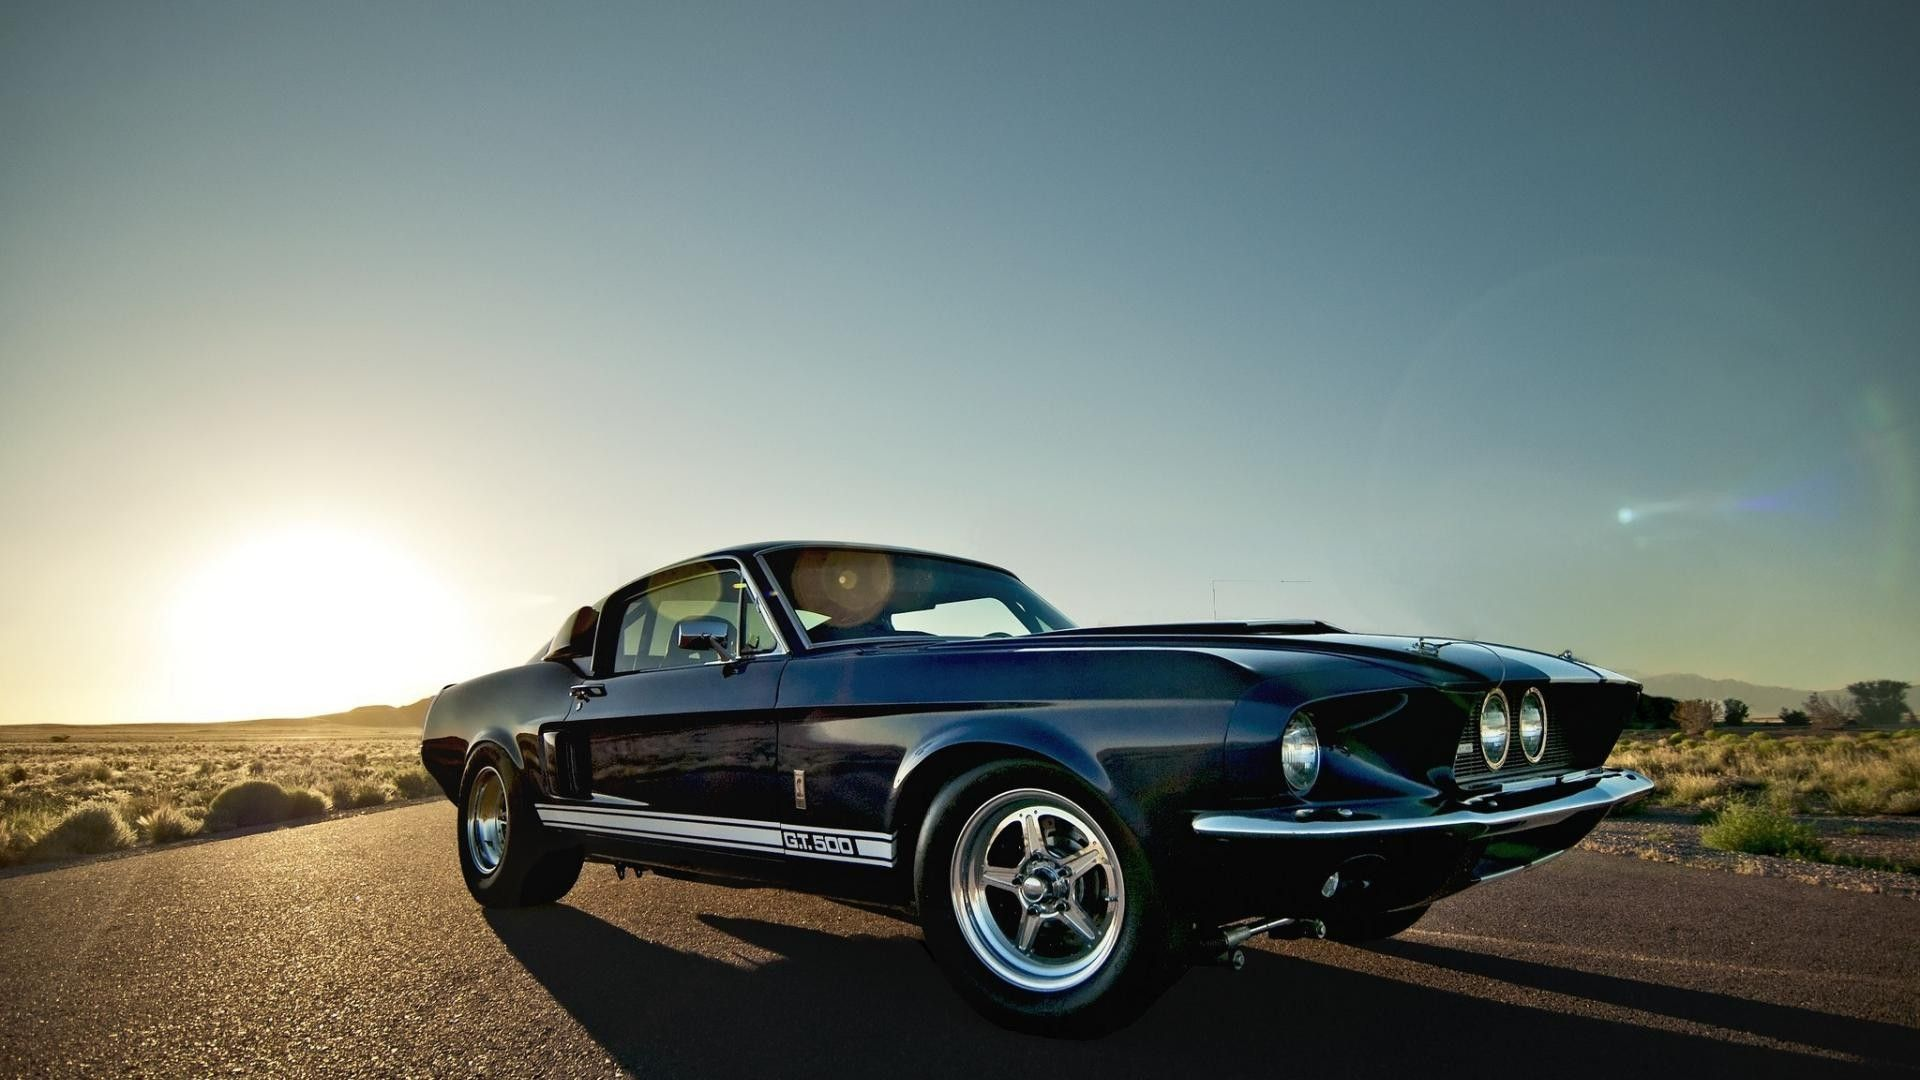 ford mustang classic hd 1080p wallpapers download. Black Bedroom Furniture Sets. Home Design Ideas